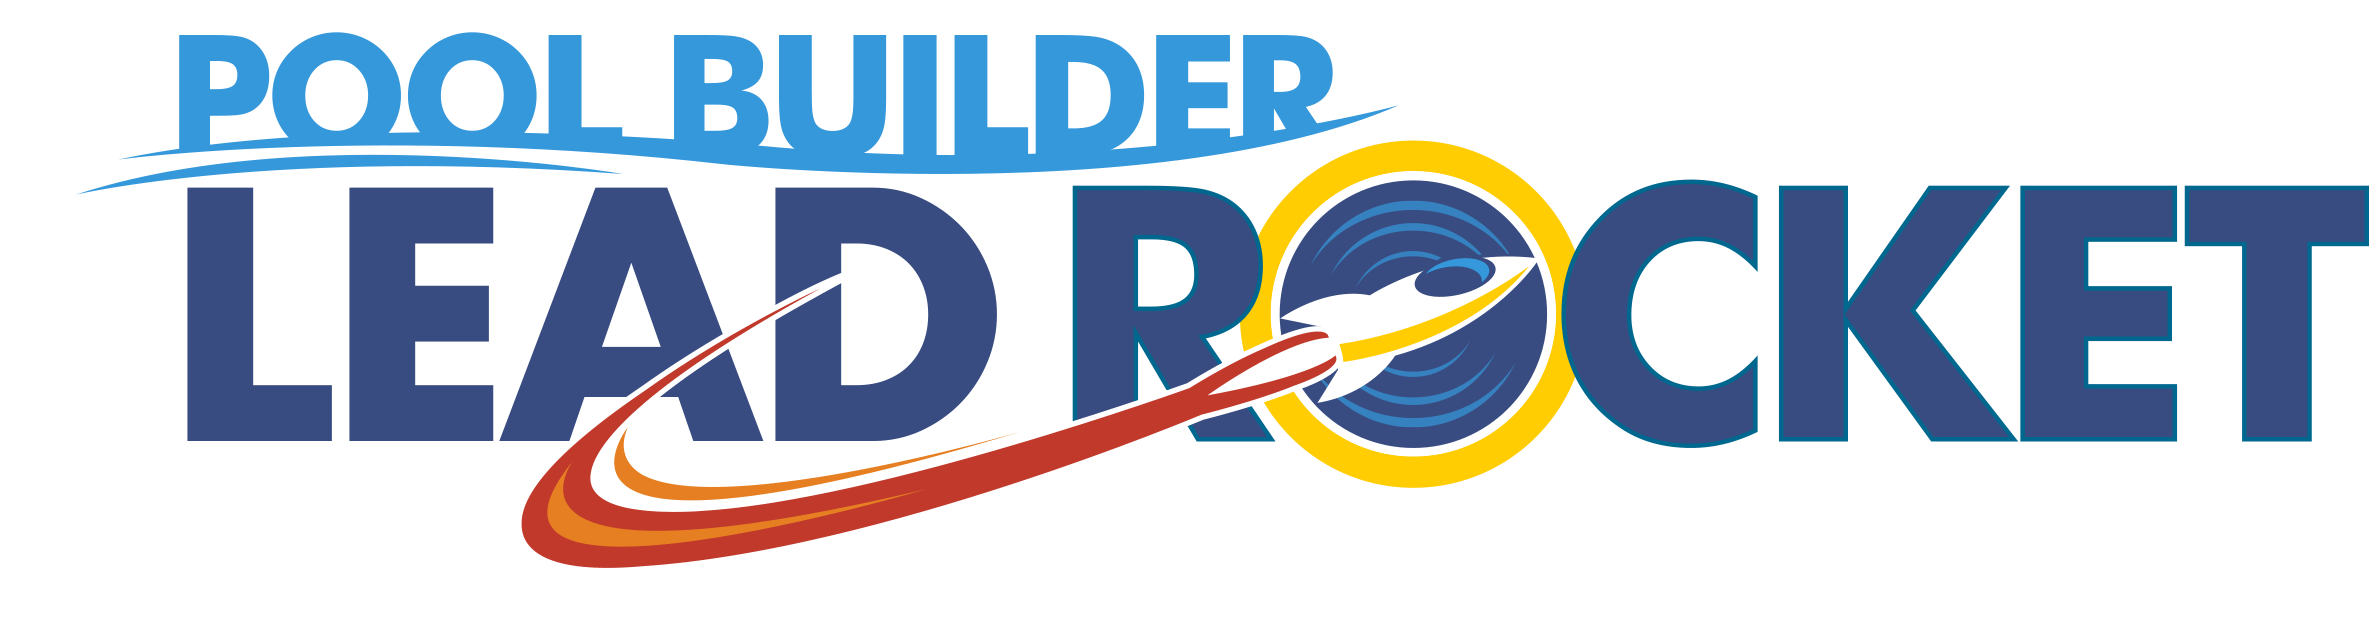 Pool Builder Marketing